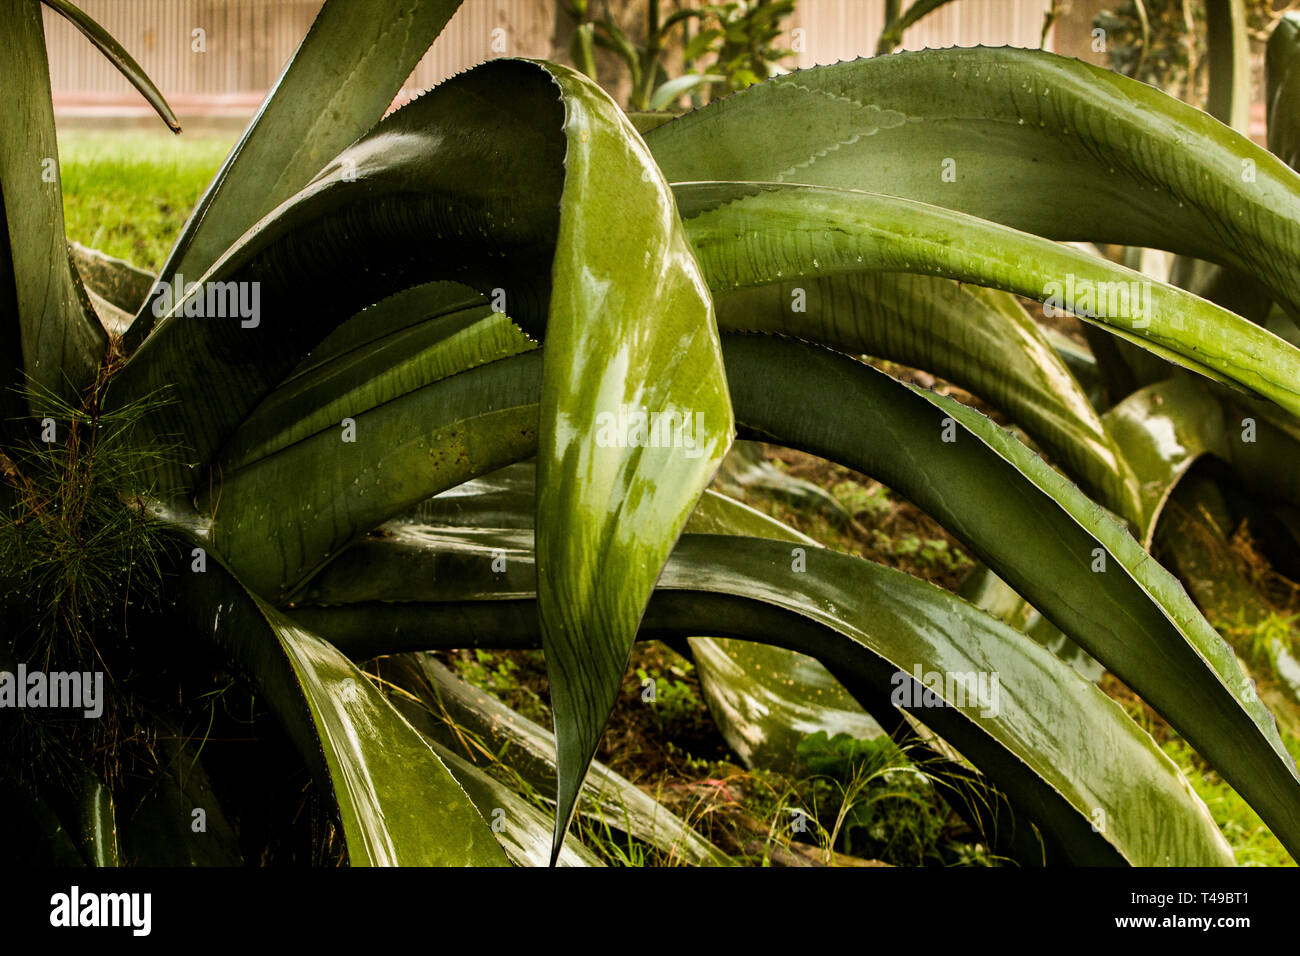 Aloe Vera Kaktus Aloe Vera And Cactus Stock Photos Aloe Vera And Cactus Stock